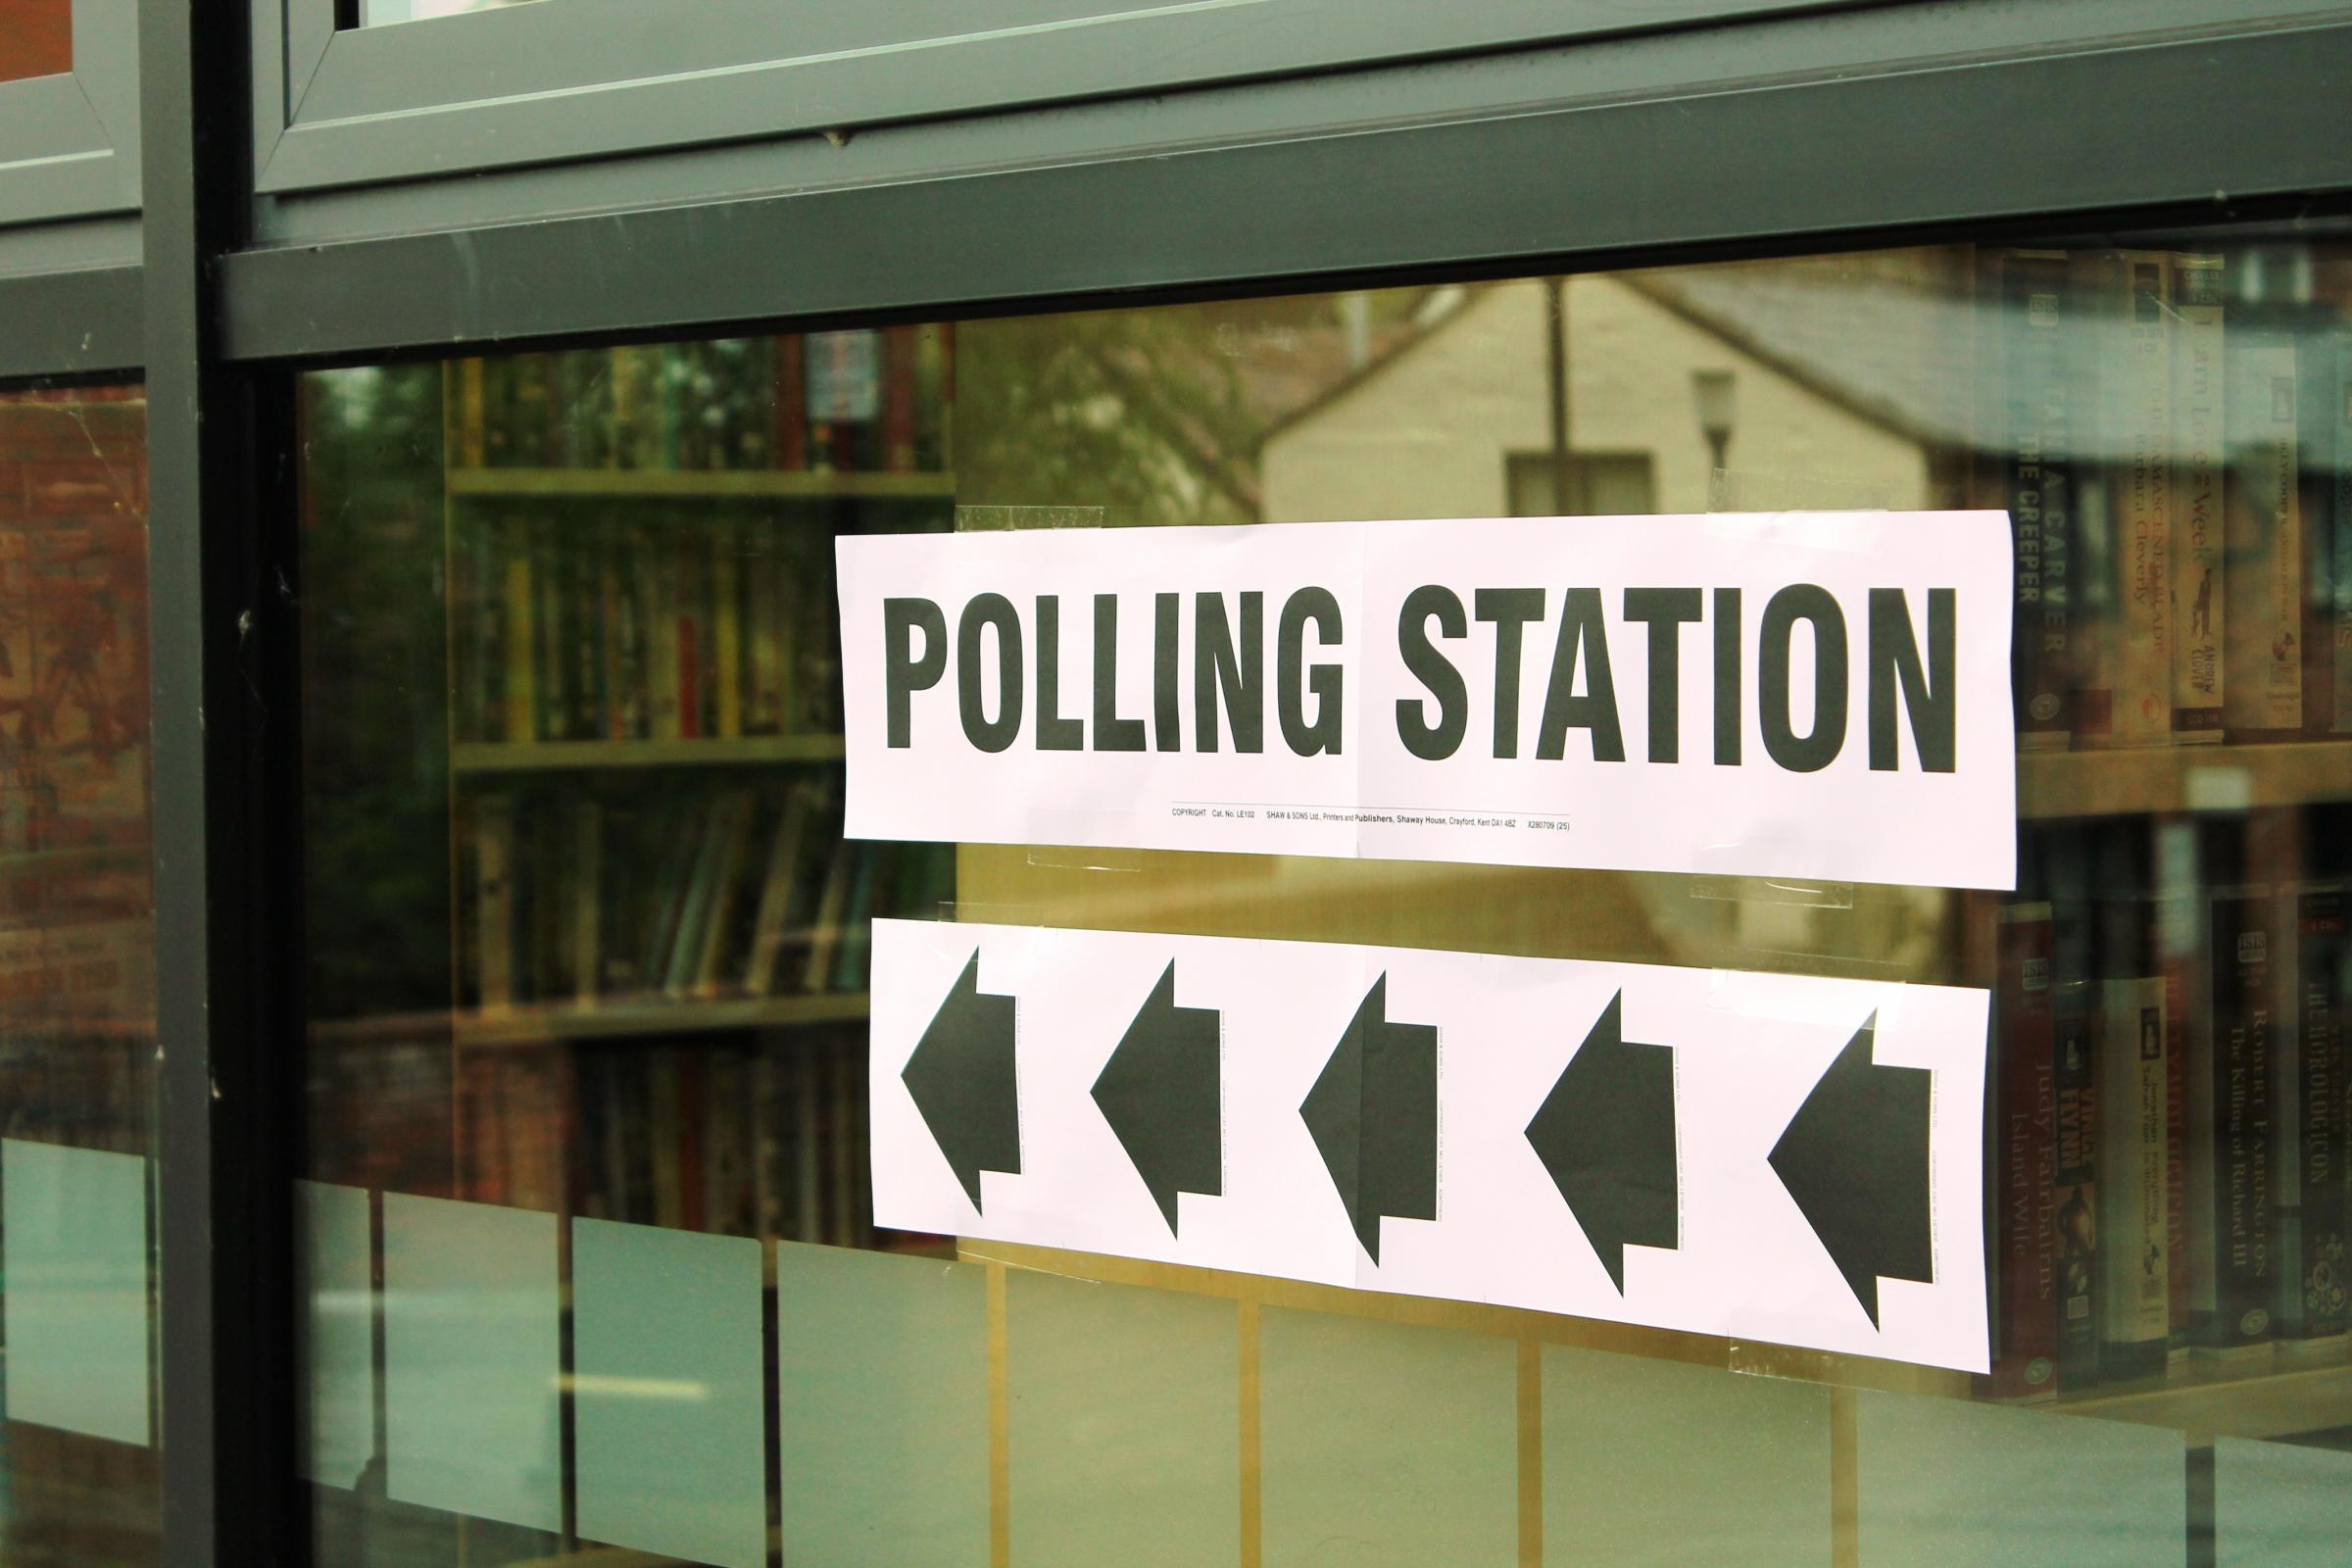 Ludlow Library is one of the polling stations in today's election.